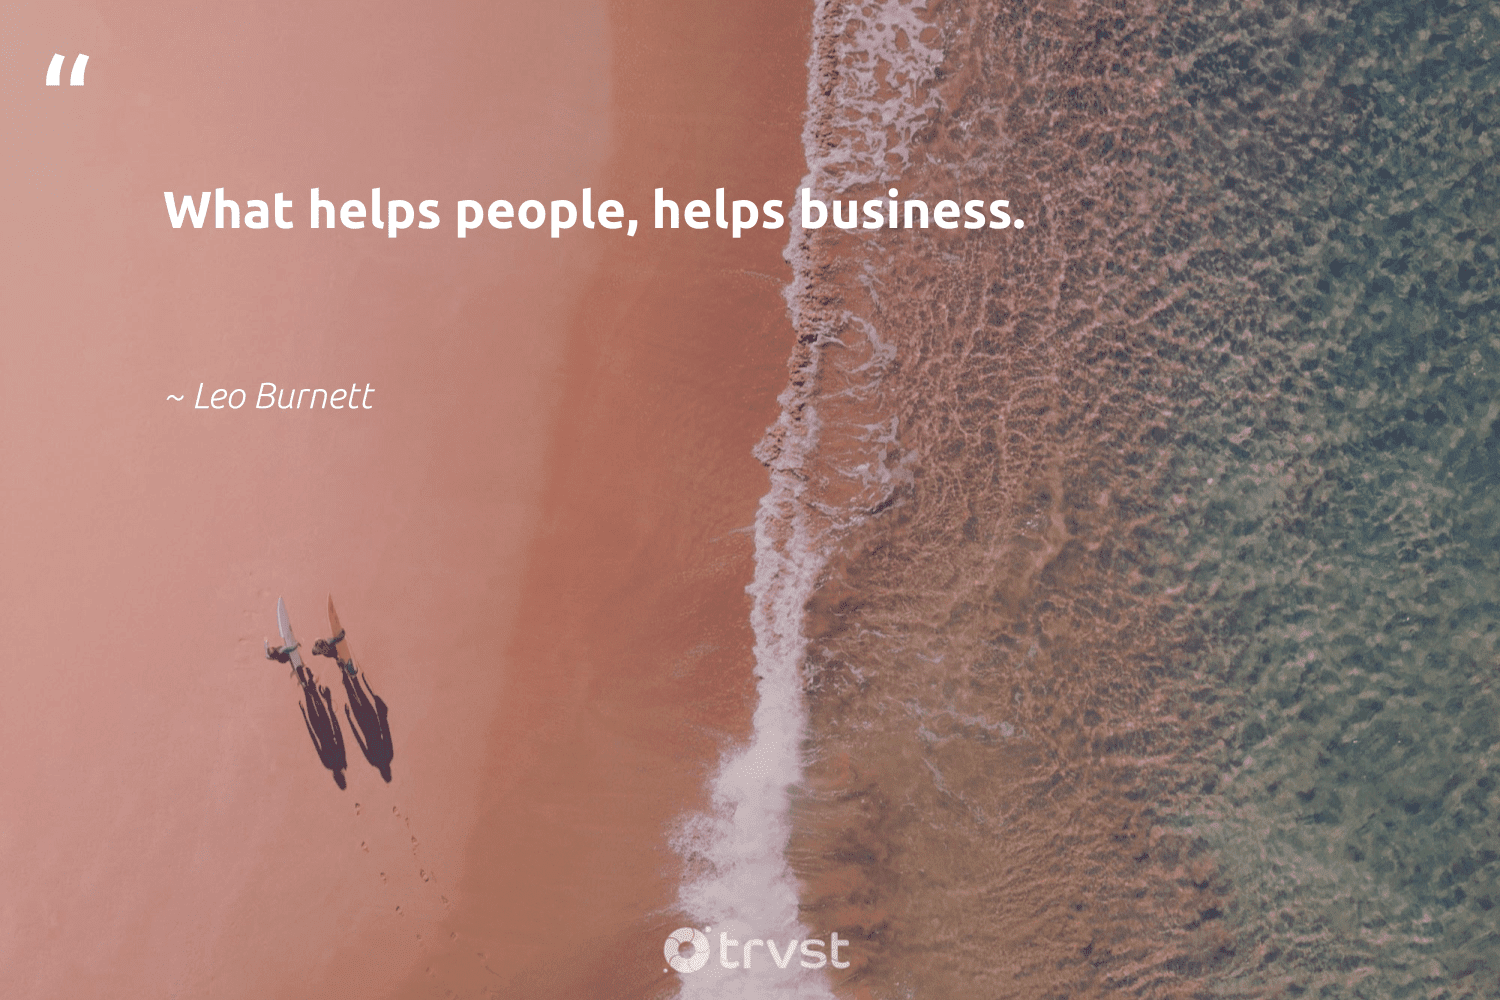 """""""What helps people, helps business.""""  - Leo Burnett #trvst #quotes #futureofwork #thinkgreen #softskills #takeaction #nevergiveup #socialchange #begreat #collectiveaction #planetearthfirst #socialimpact"""